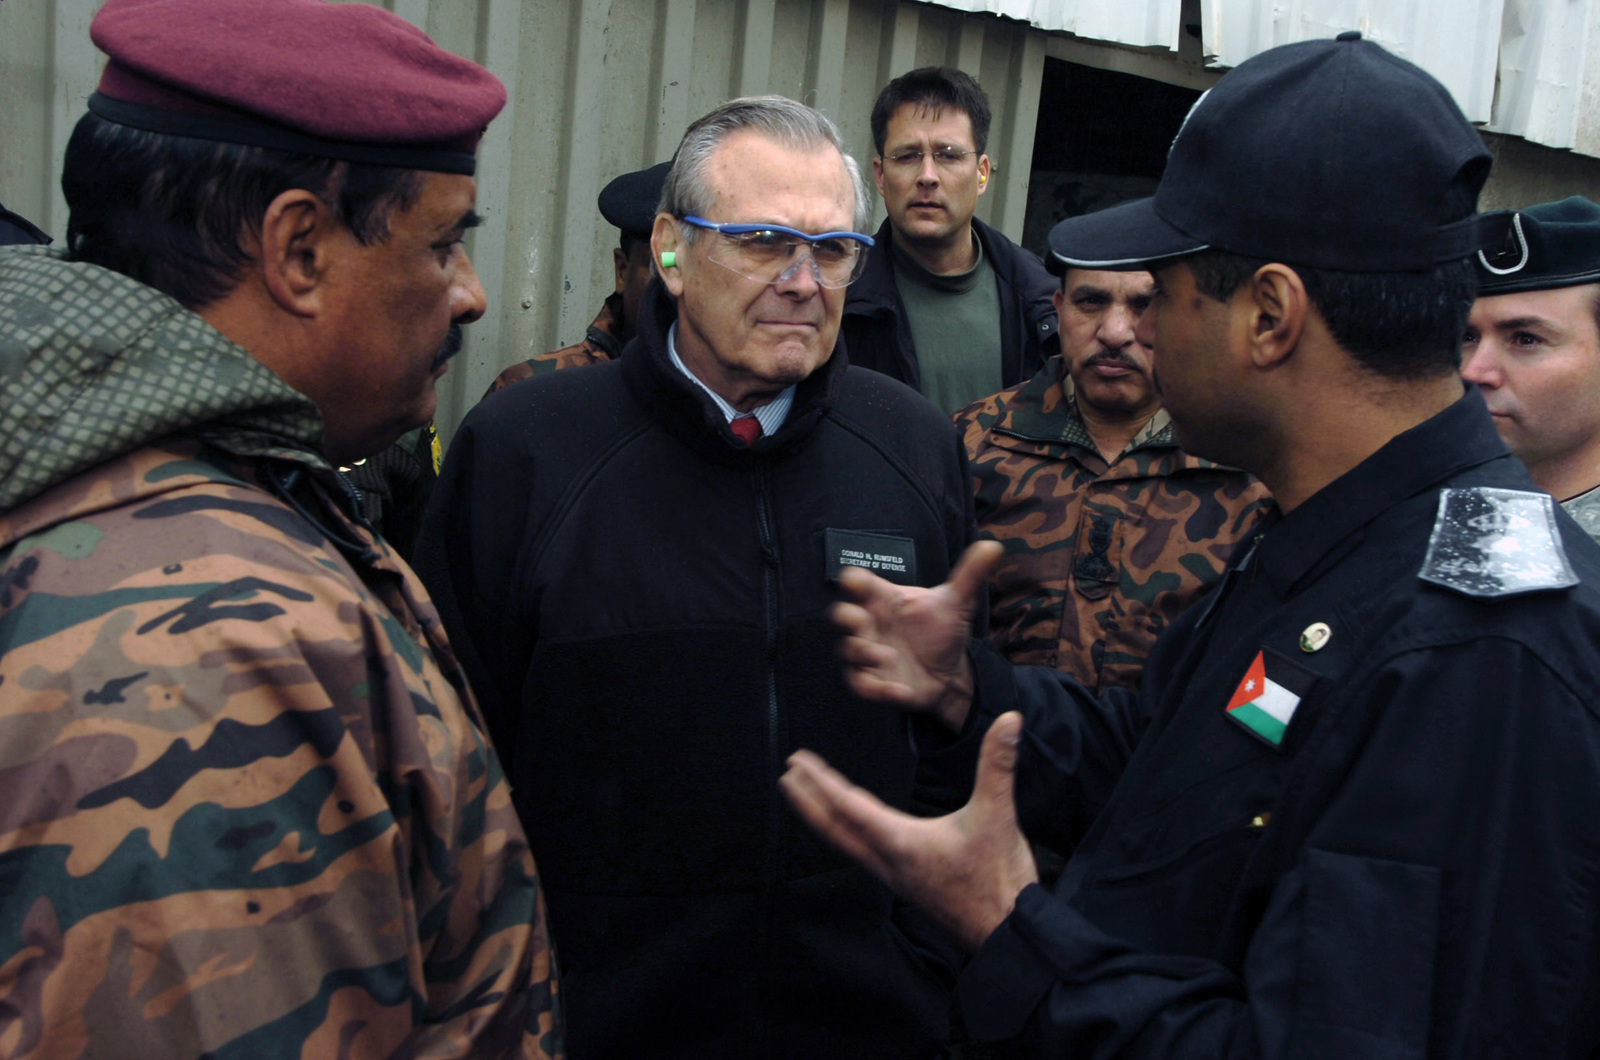 The Honorable Donald H. Rumsfeld (center), U.S. Secretary of Defense (SECDEF), is briefed by Jordanian Special Operations Forces about the capabilities of the Jordanian anti-terrorism training program at the King Abdullah II Special Operations Training Center (KASOTC), Dec.23, 2005.  The SECDEF is in country to visit the KASOTC after visiting the affected areas of the Oct. 8, 2005 earthquake in Pakistan and to support the U.S. Service Members of the region.  (DoD photo by PETTY Officer 1ST Class Chad J. McNeeley) (Released)